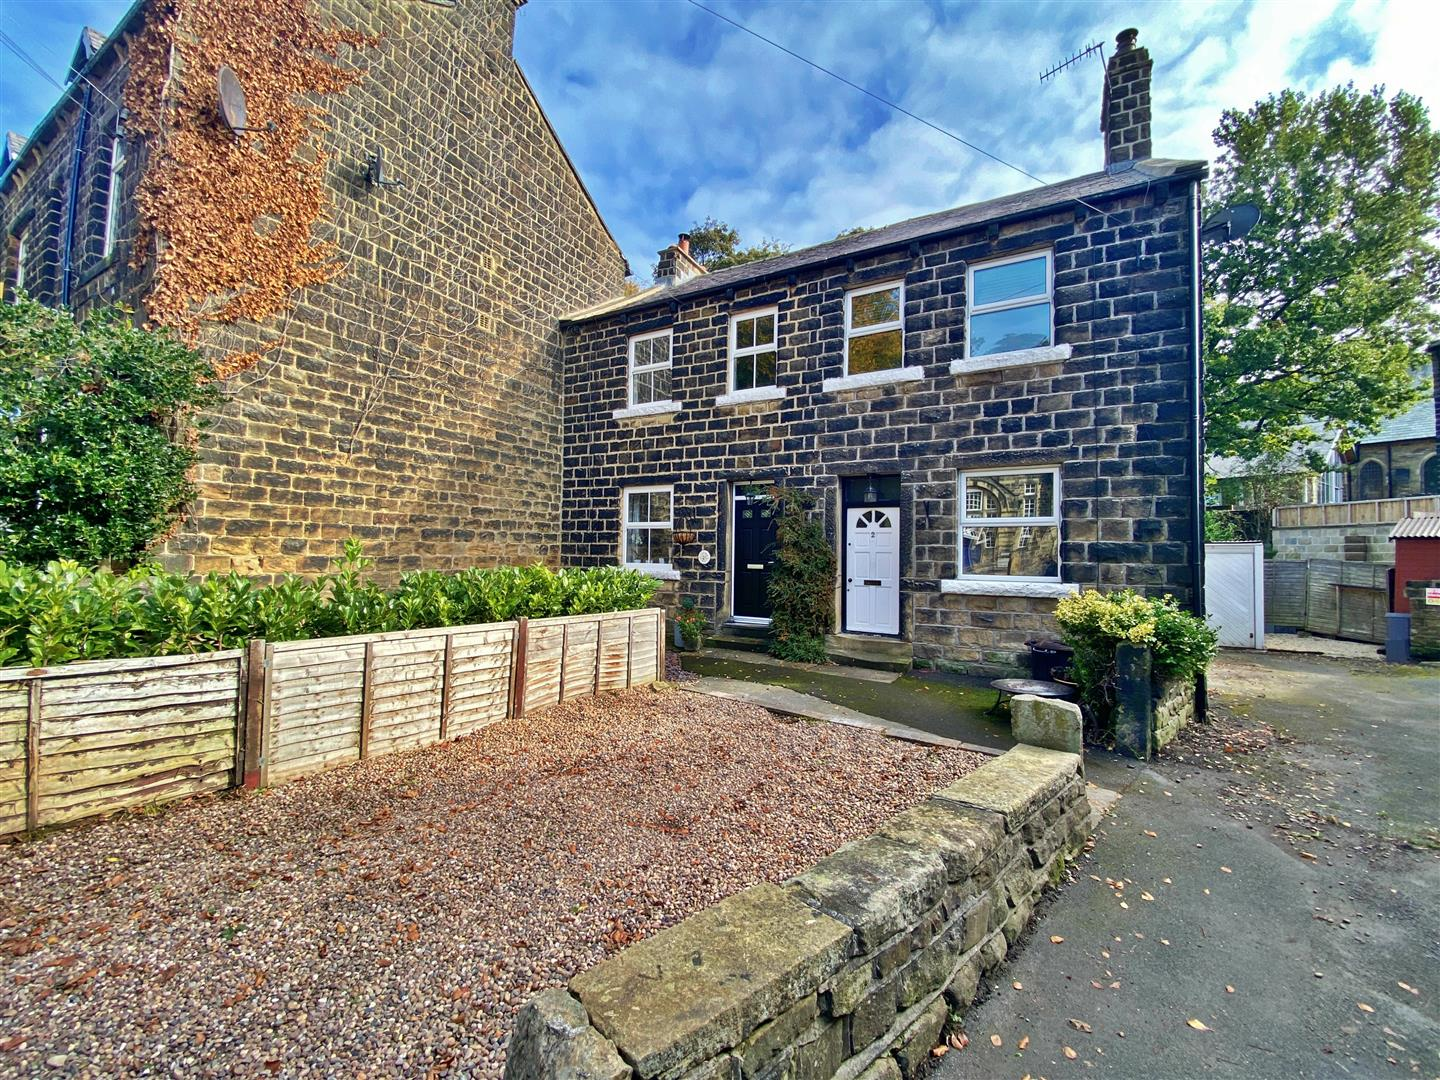 Church Croft, Menston, LS29 6EF